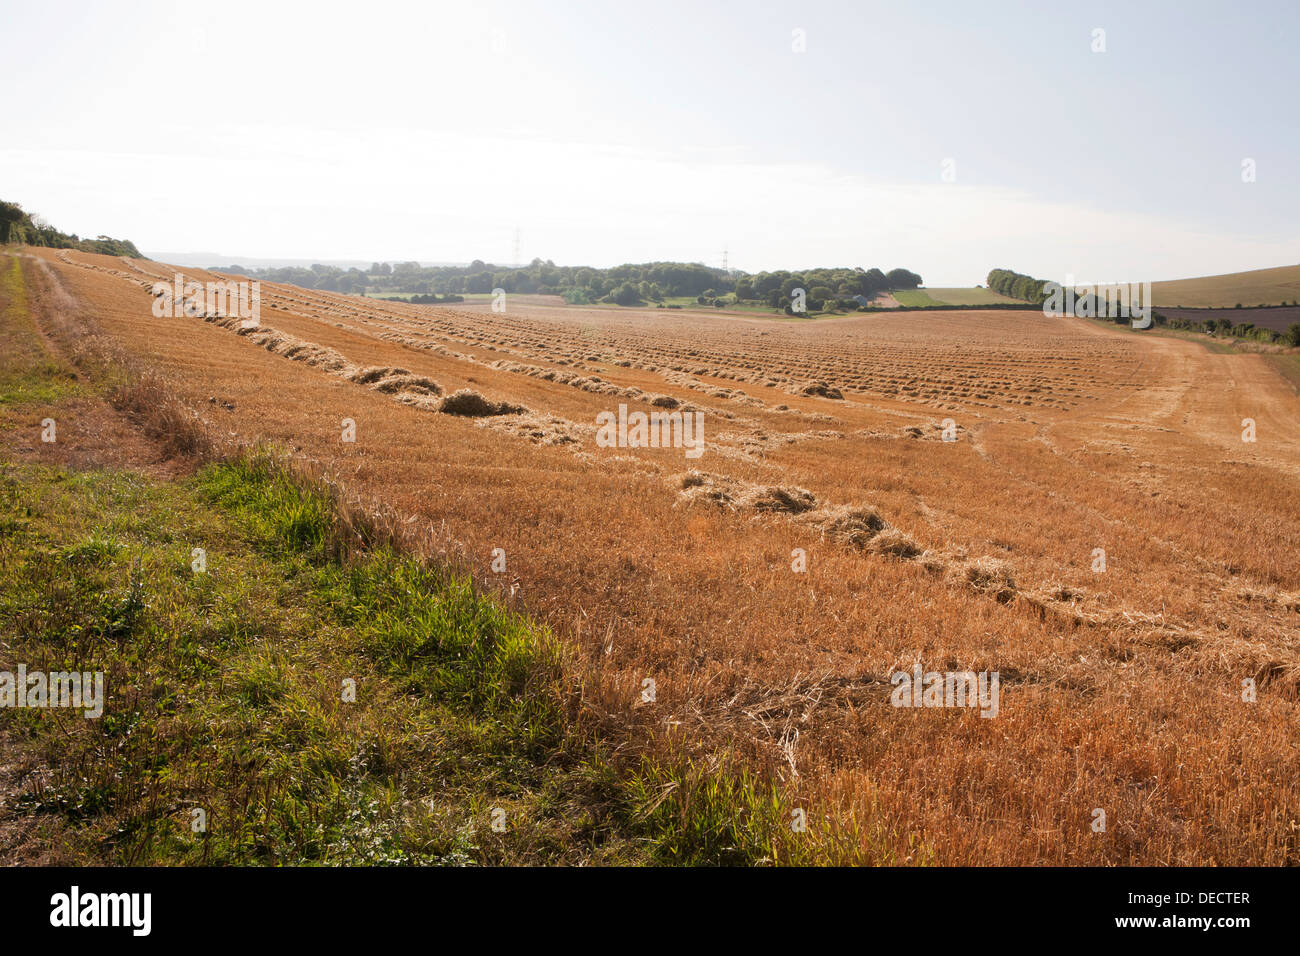 Empty harvested field, piles of straw await being baled up into bales. - Stock Image